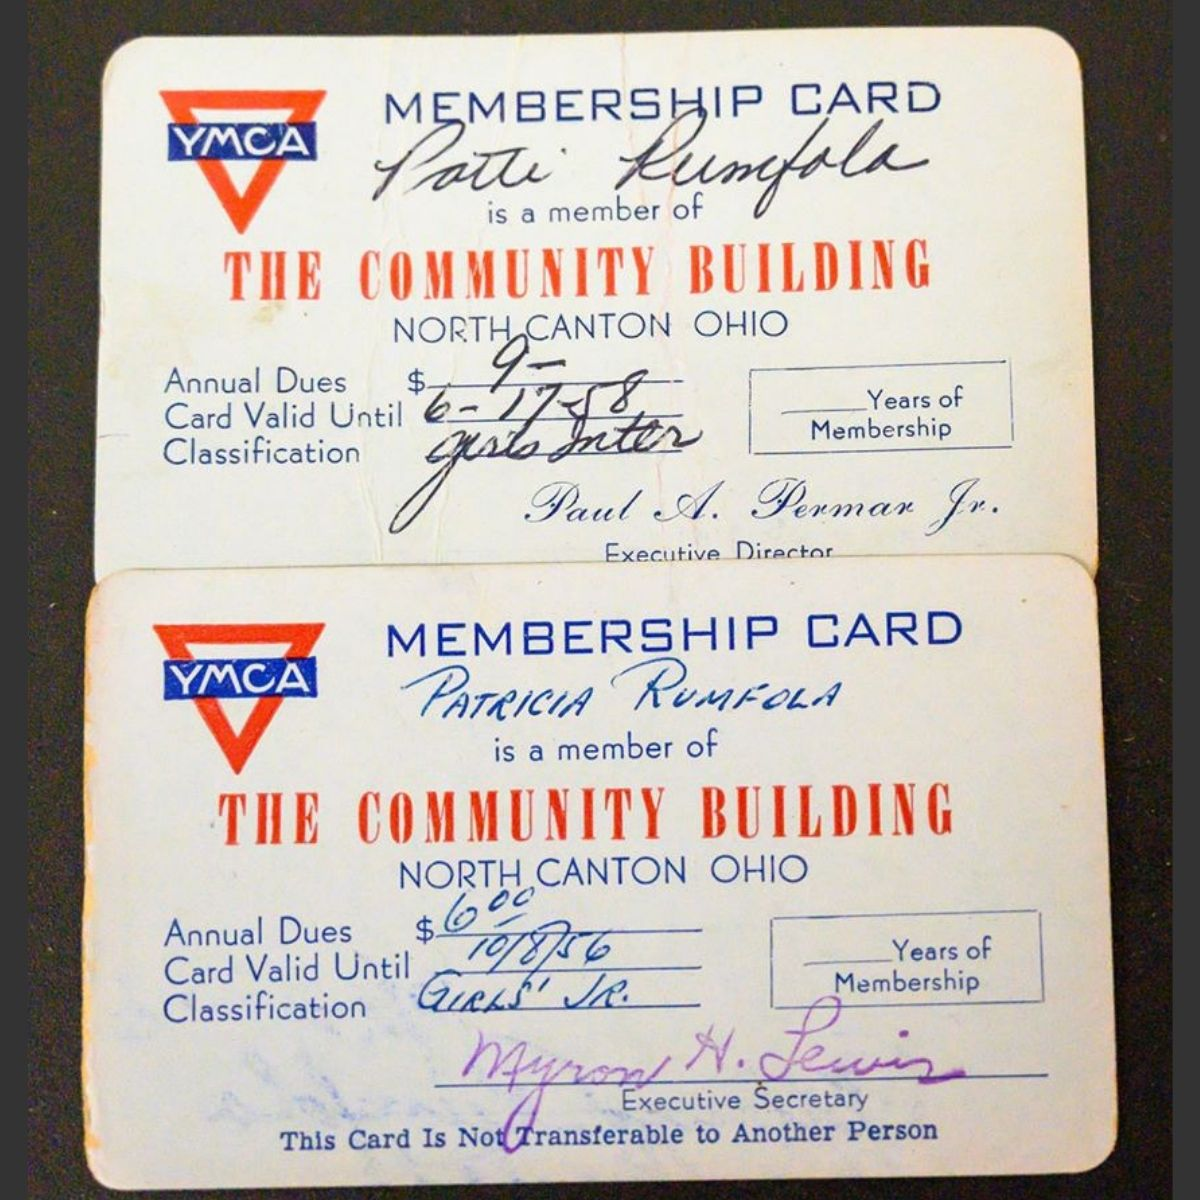 YMCA membership cards for patti, one expired